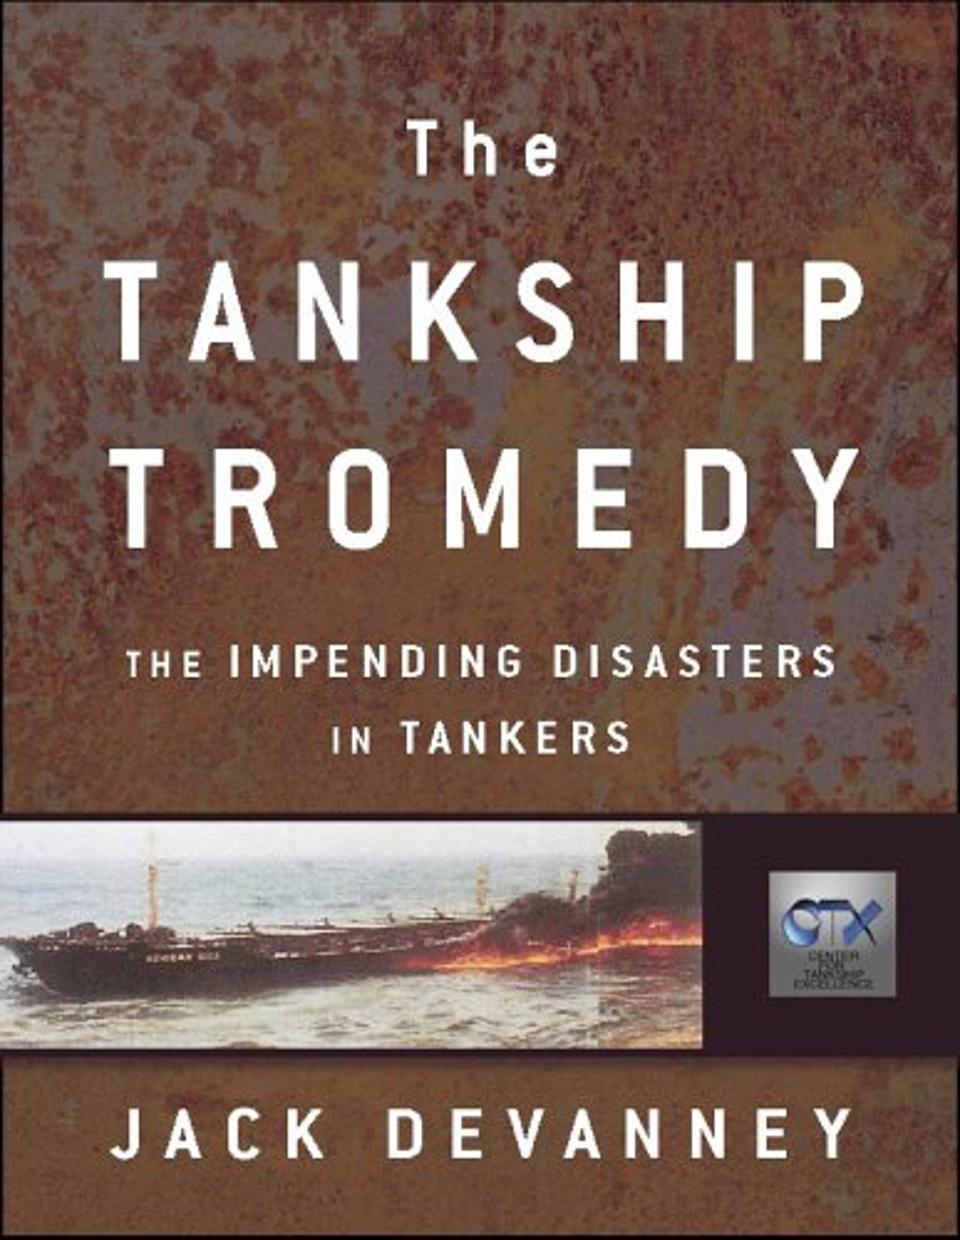 Jack Devanney's classic, The Tankship Tromedy, is essential reading to understand the underlying causes of oil spills and major ship incidents on the ocean